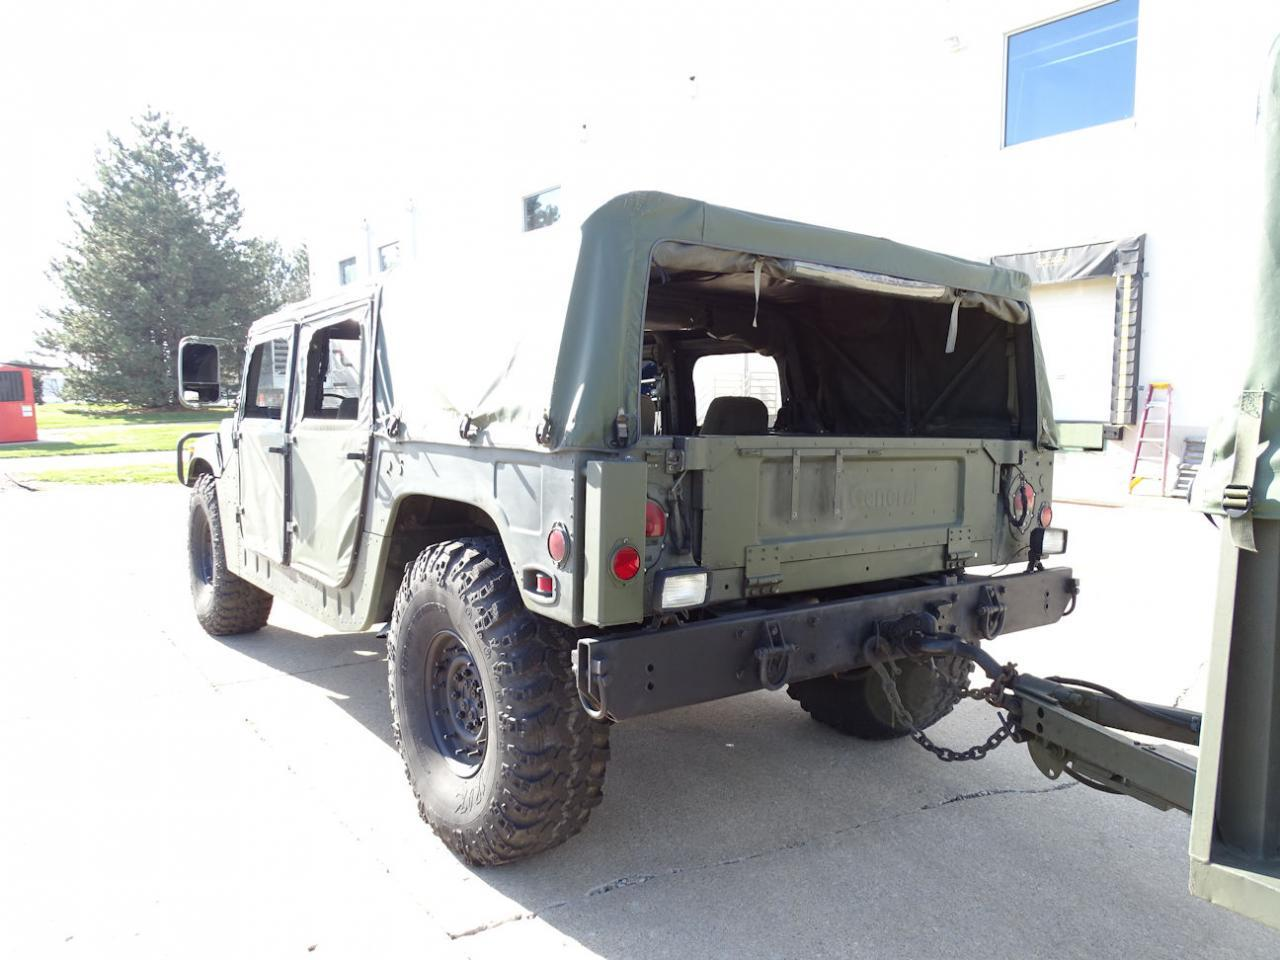 Large Picture of 1987 AM General Hummer located in Indiana - $34,595.00 Offered by Gateway Classic Cars - Indianapolis - MFCX